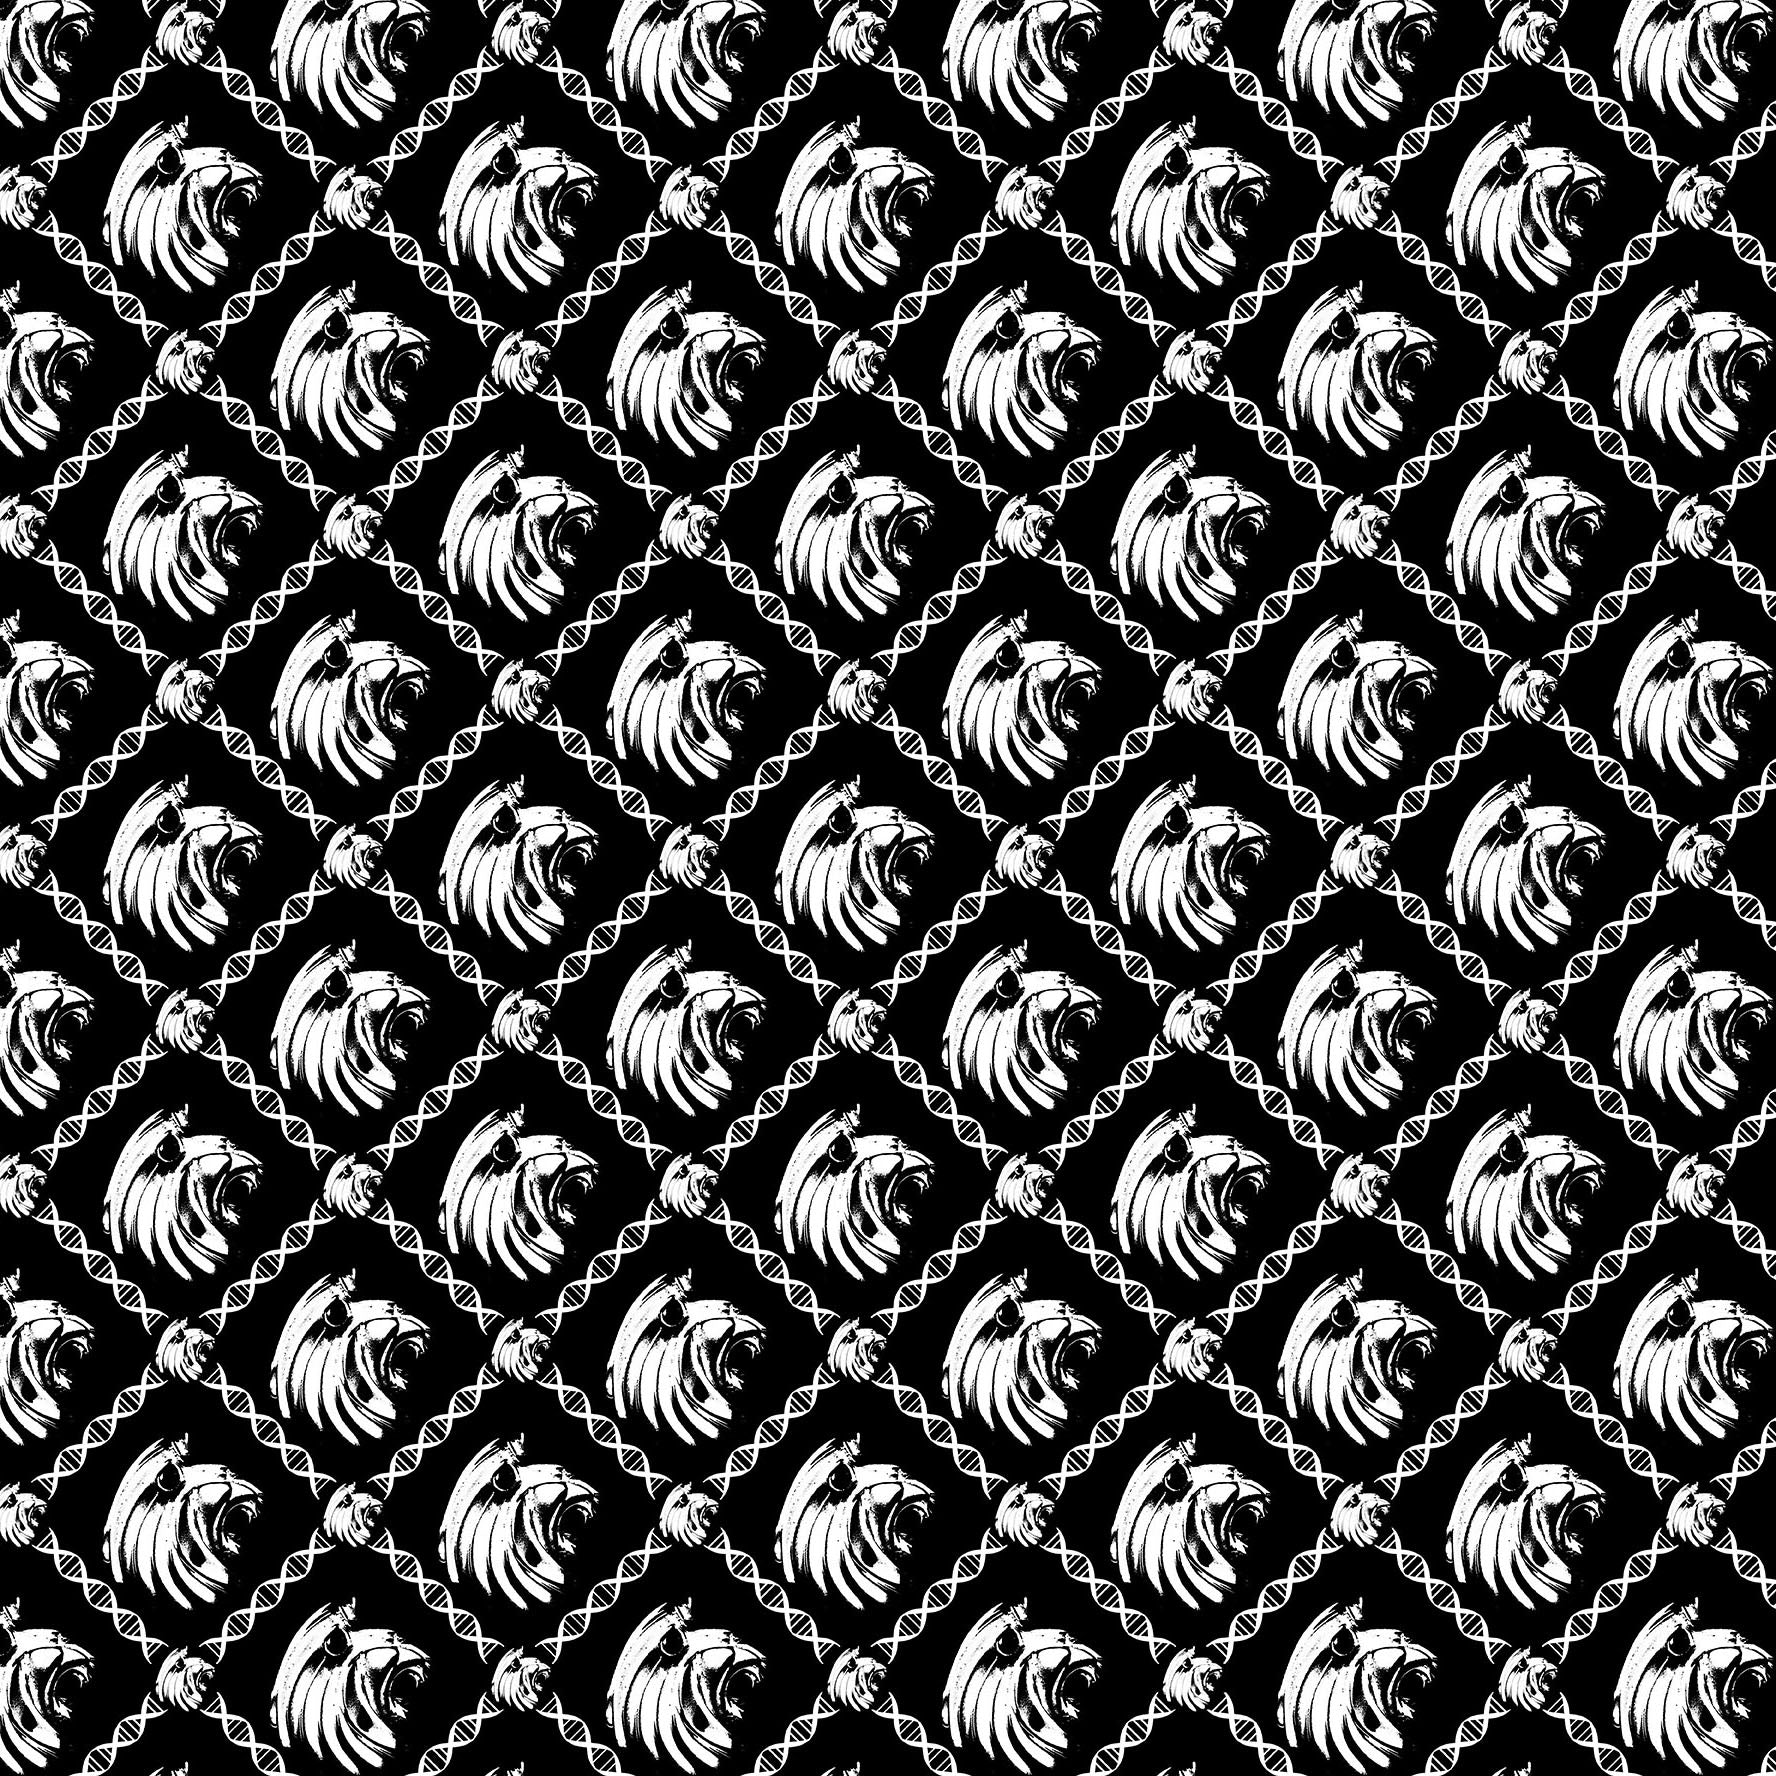 Yasimba lion pattern black and white